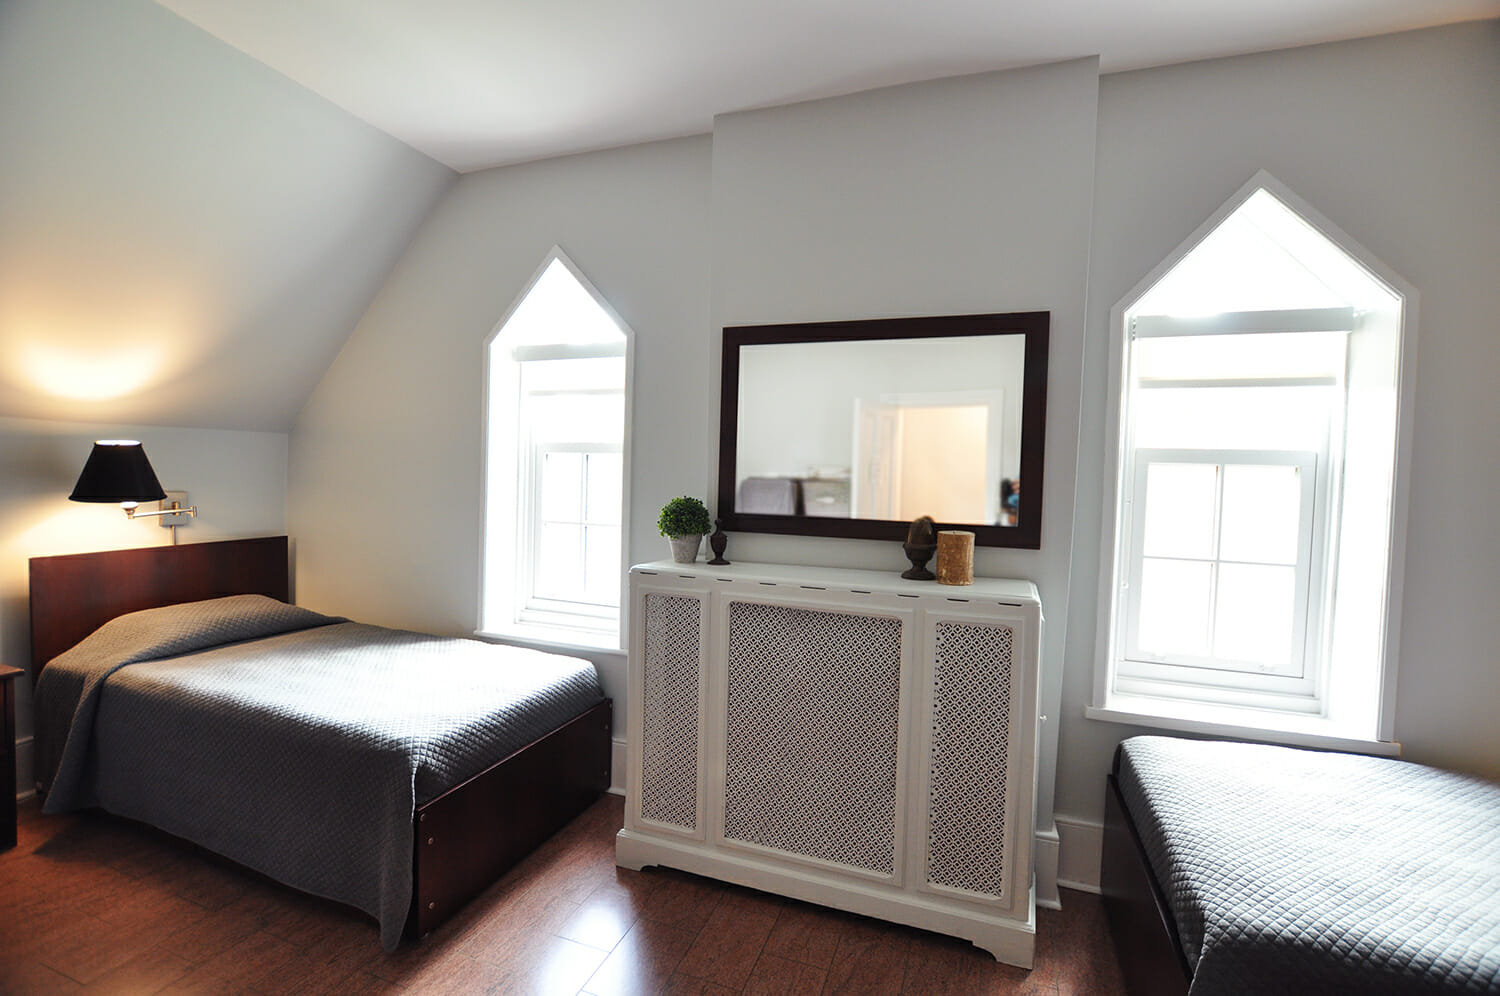 Two beds with grey bedding in Sullivan Centre bedroom.